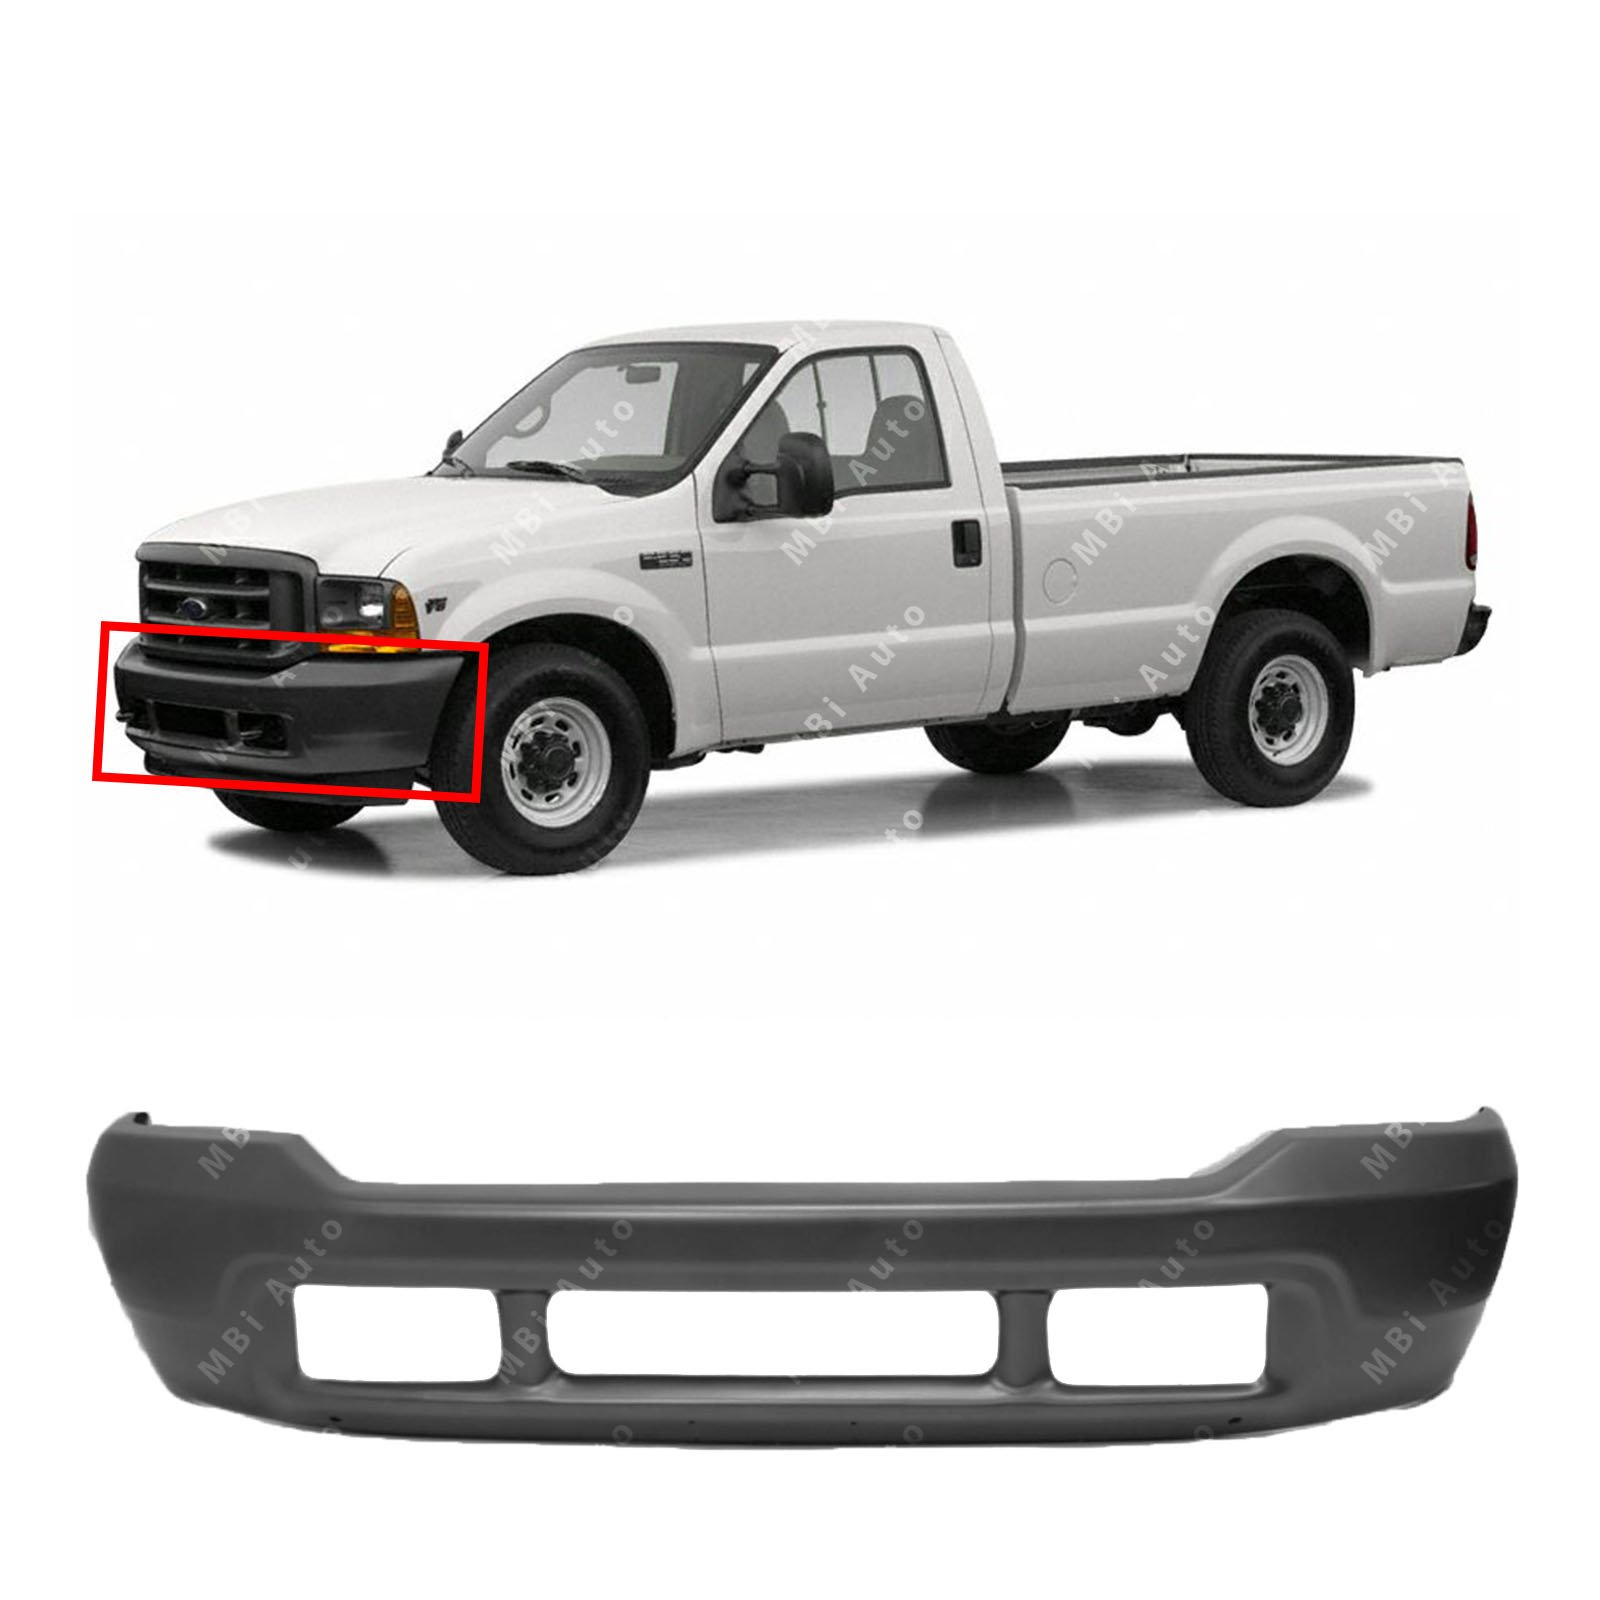 Chrome FO1101141 Steel Rear Step Bumper Assembly for 1999-2007 Ford F250 F350 Super Duty 99-07 MBI AUTO